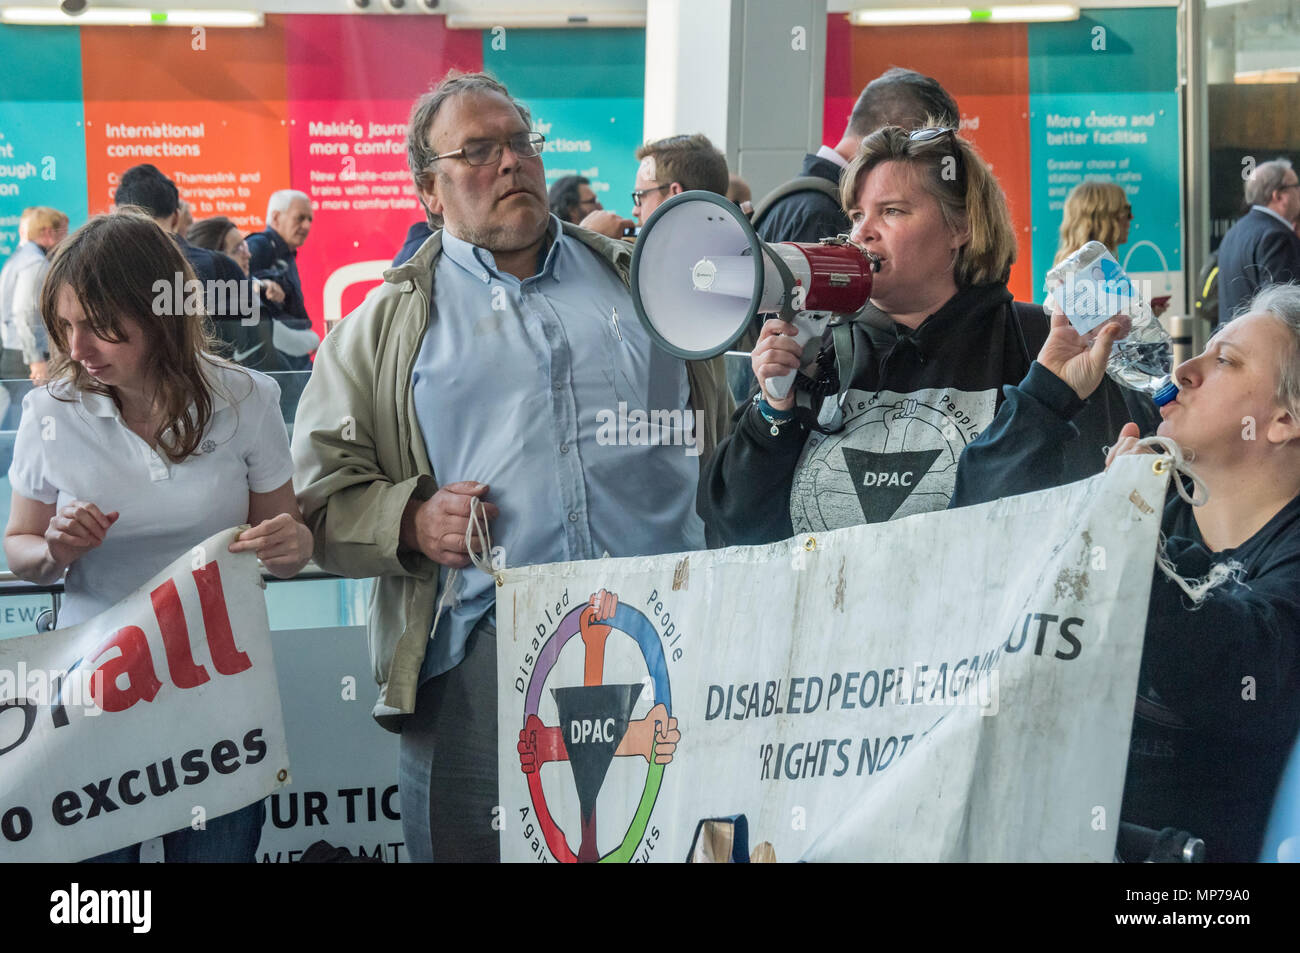 London, UK. 21st May 2018. Paula Peters of DPAC speaks at the 'People's Picket' by disabled rail passengers from Disabled People Against Cuts along with the Association of British Commuters and RMT members outside London Bridge station. GTR uses a staff training guide in which they are dehumanised as 'PRM's  and staff are instructed to leave wheelchair users on the platform, even when they have arranged and pre-booked a journey. Today's timetable changes include a reduced stopping time at stations. Credit: Peter Marshall/Alamy Live News - Stock Image